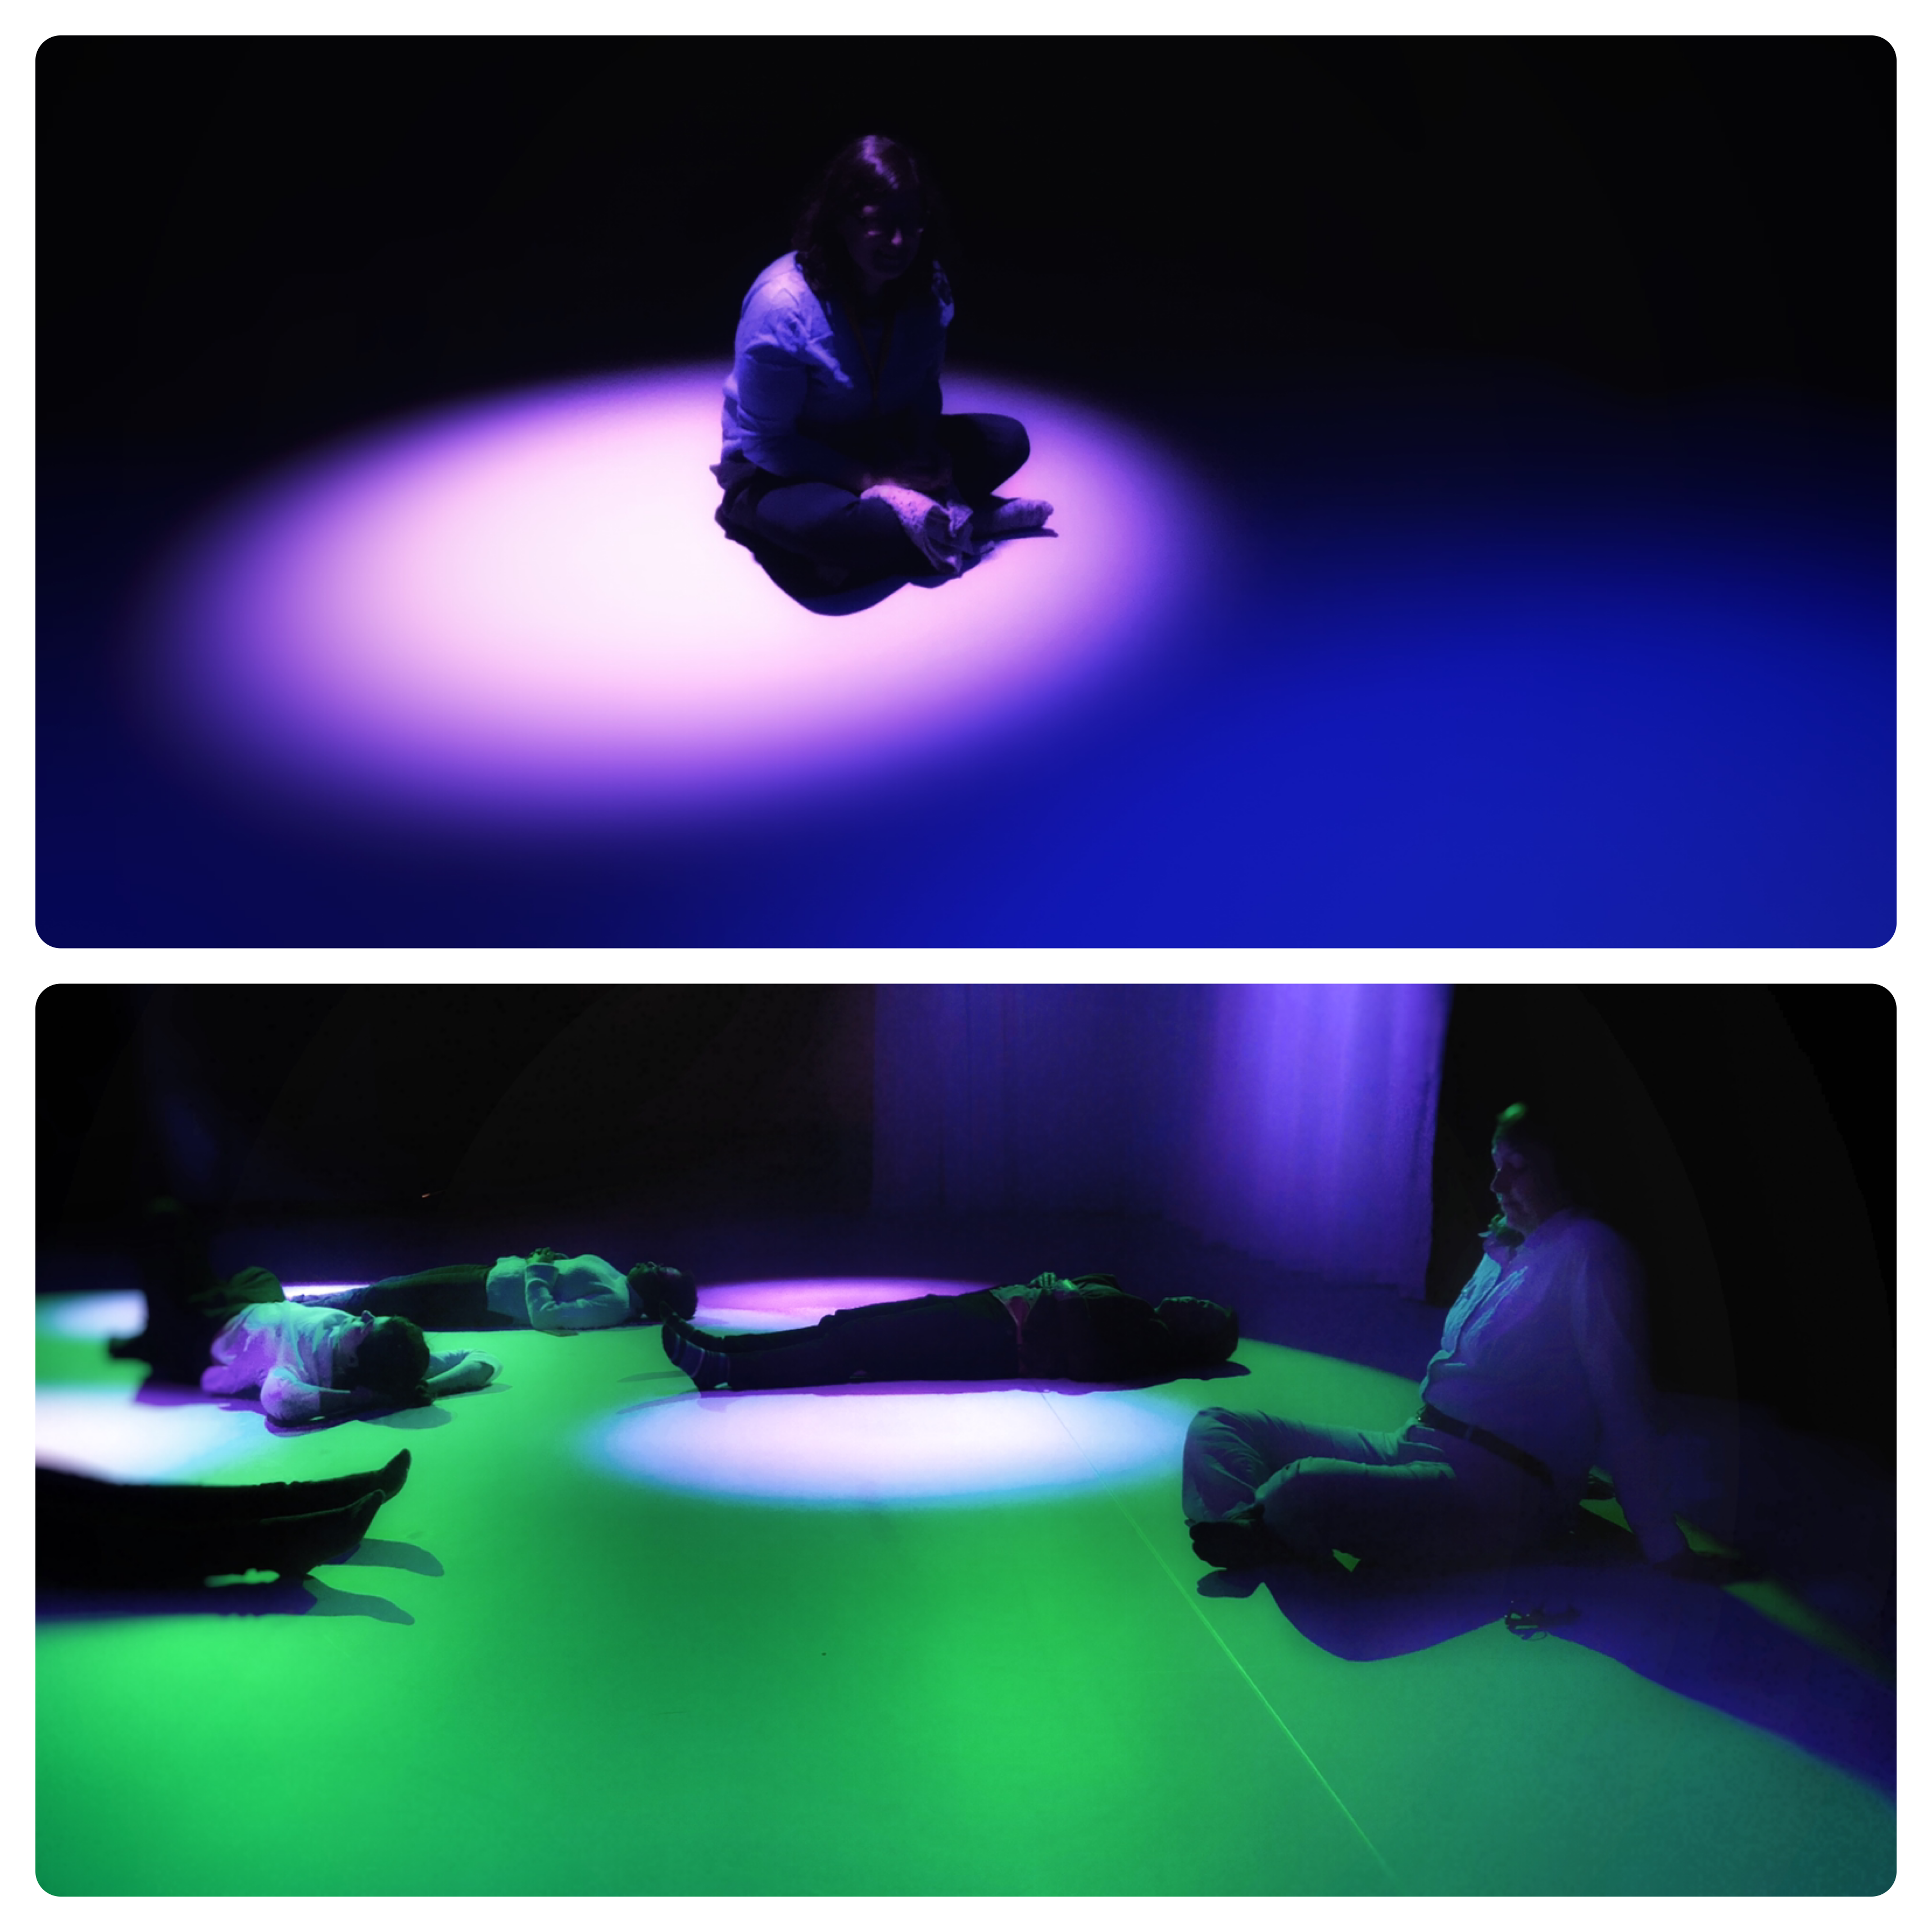 Top: Stillness lab participants lie on the ground immersed in indigo light. Bottom: Participants in green ambient light with purple spotlights.